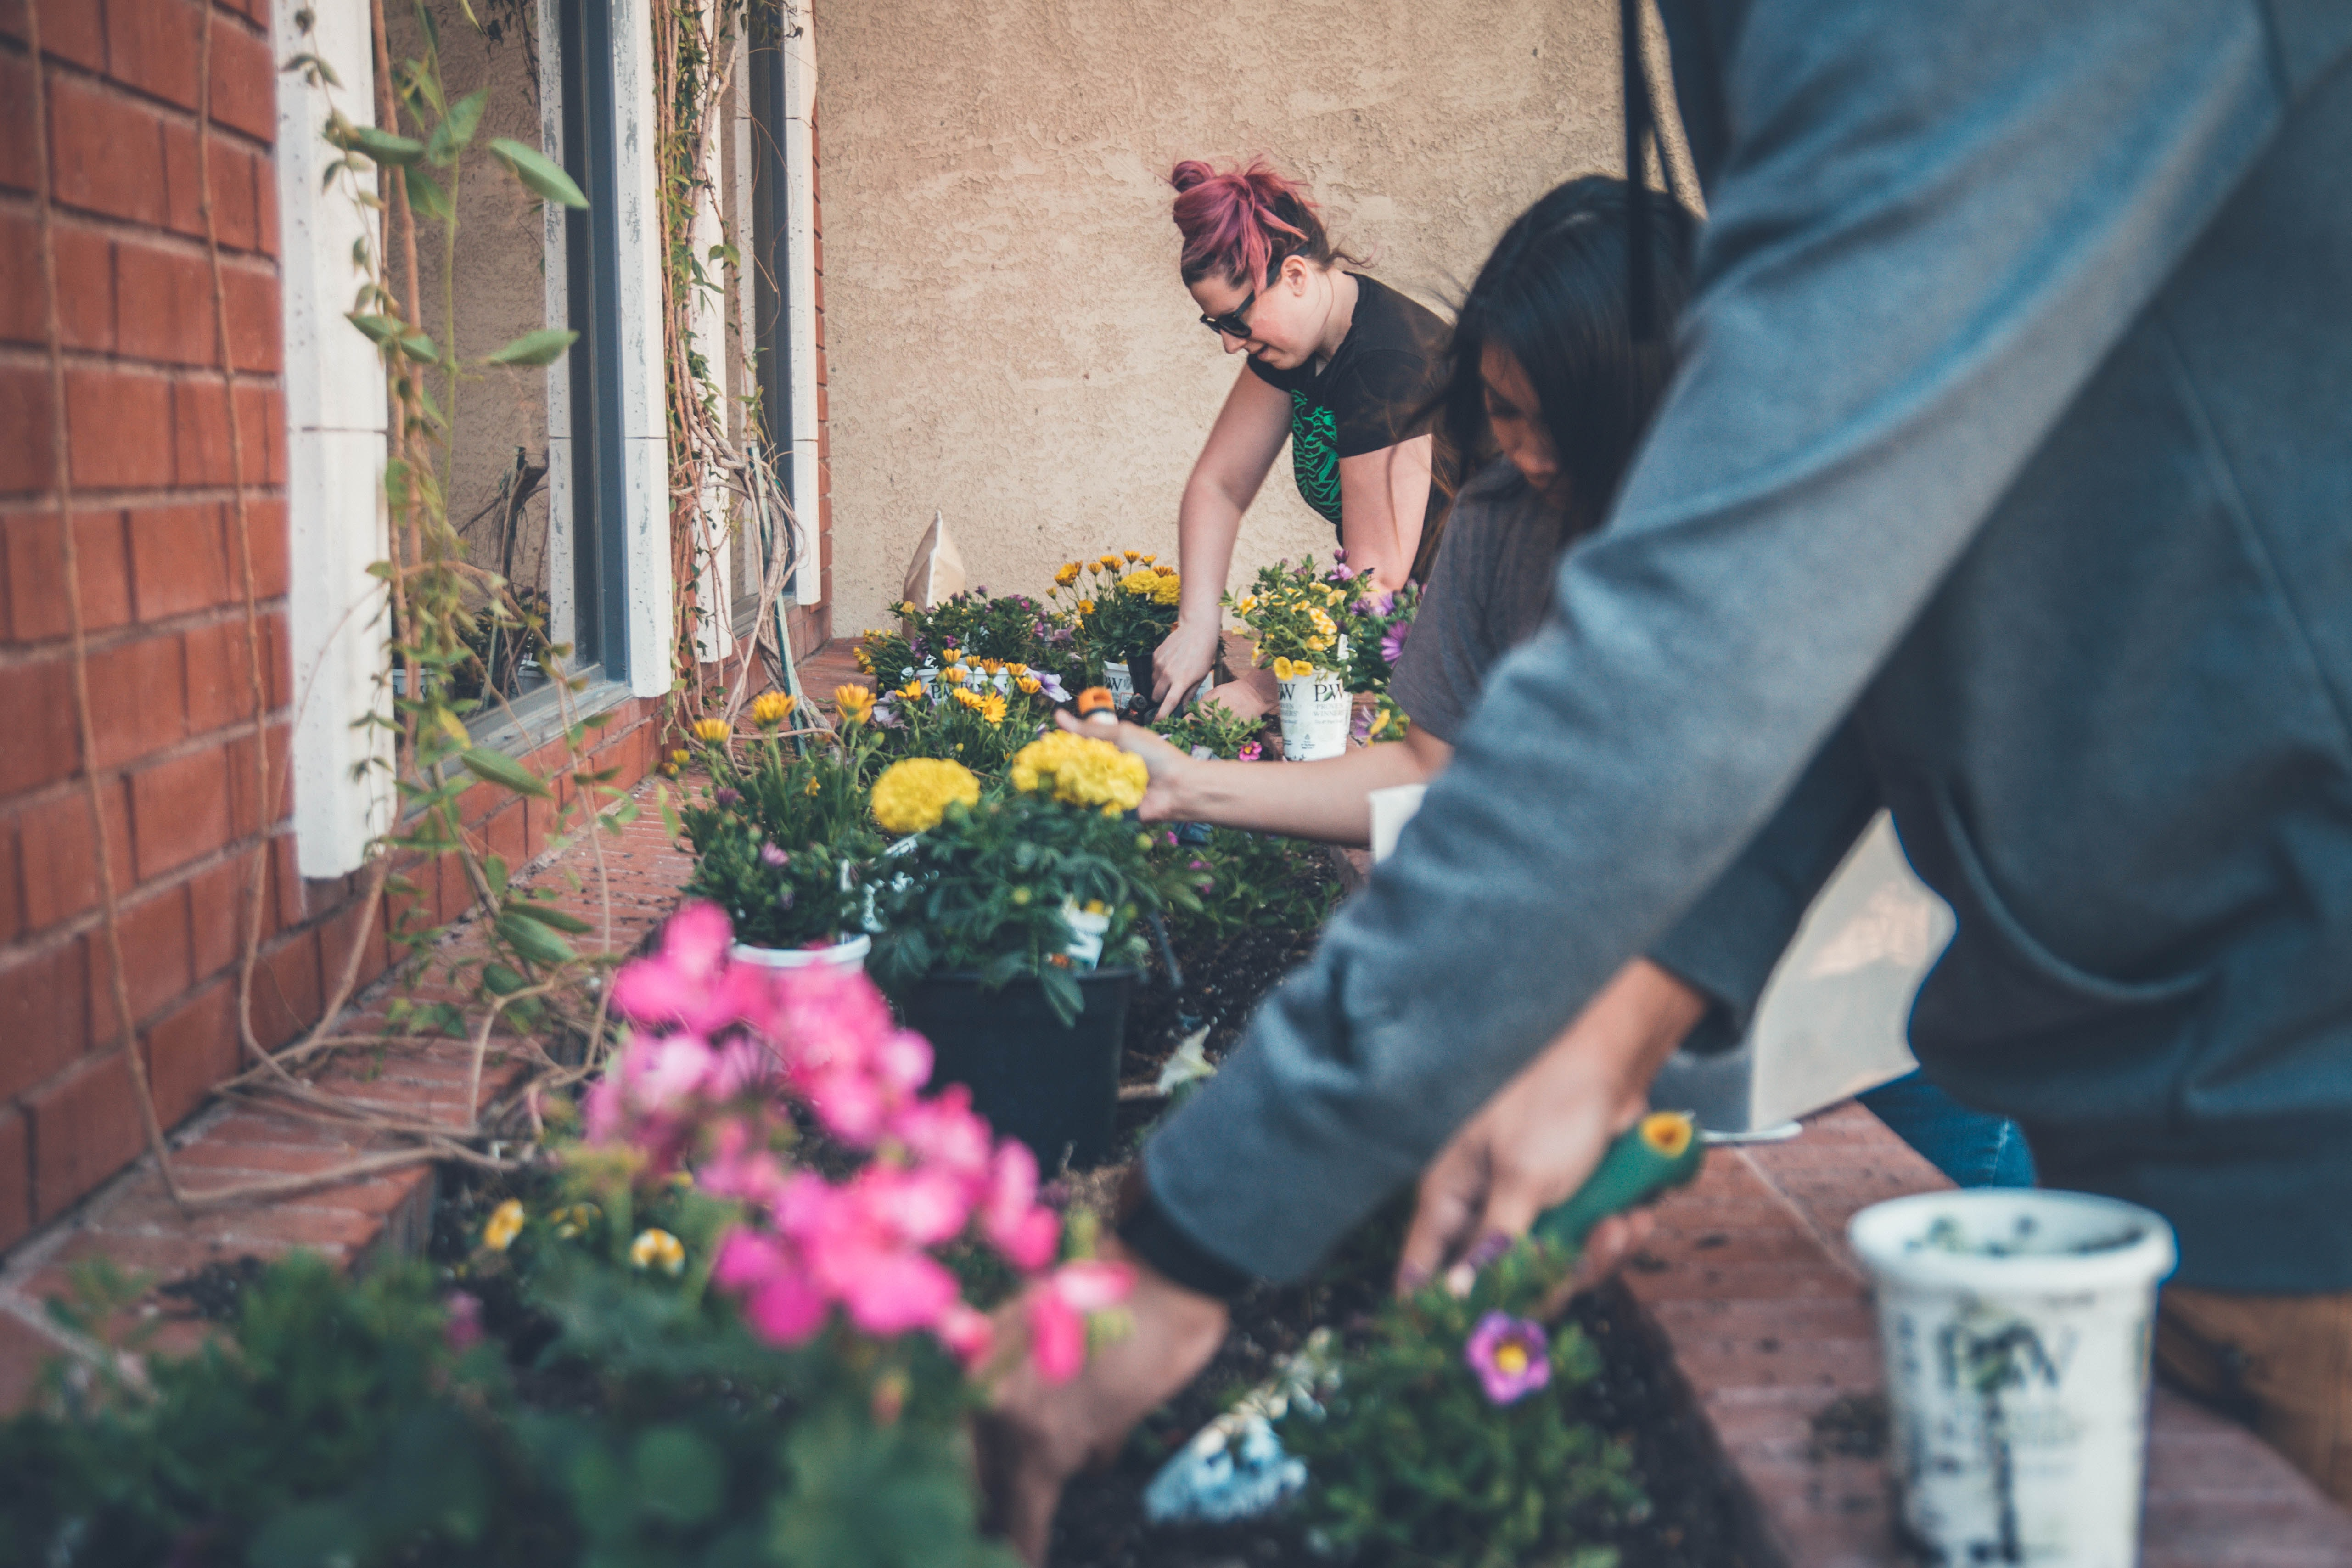 profile image of volunteer gardenners digging soil to plant yellow and pink flowers into a brick window box